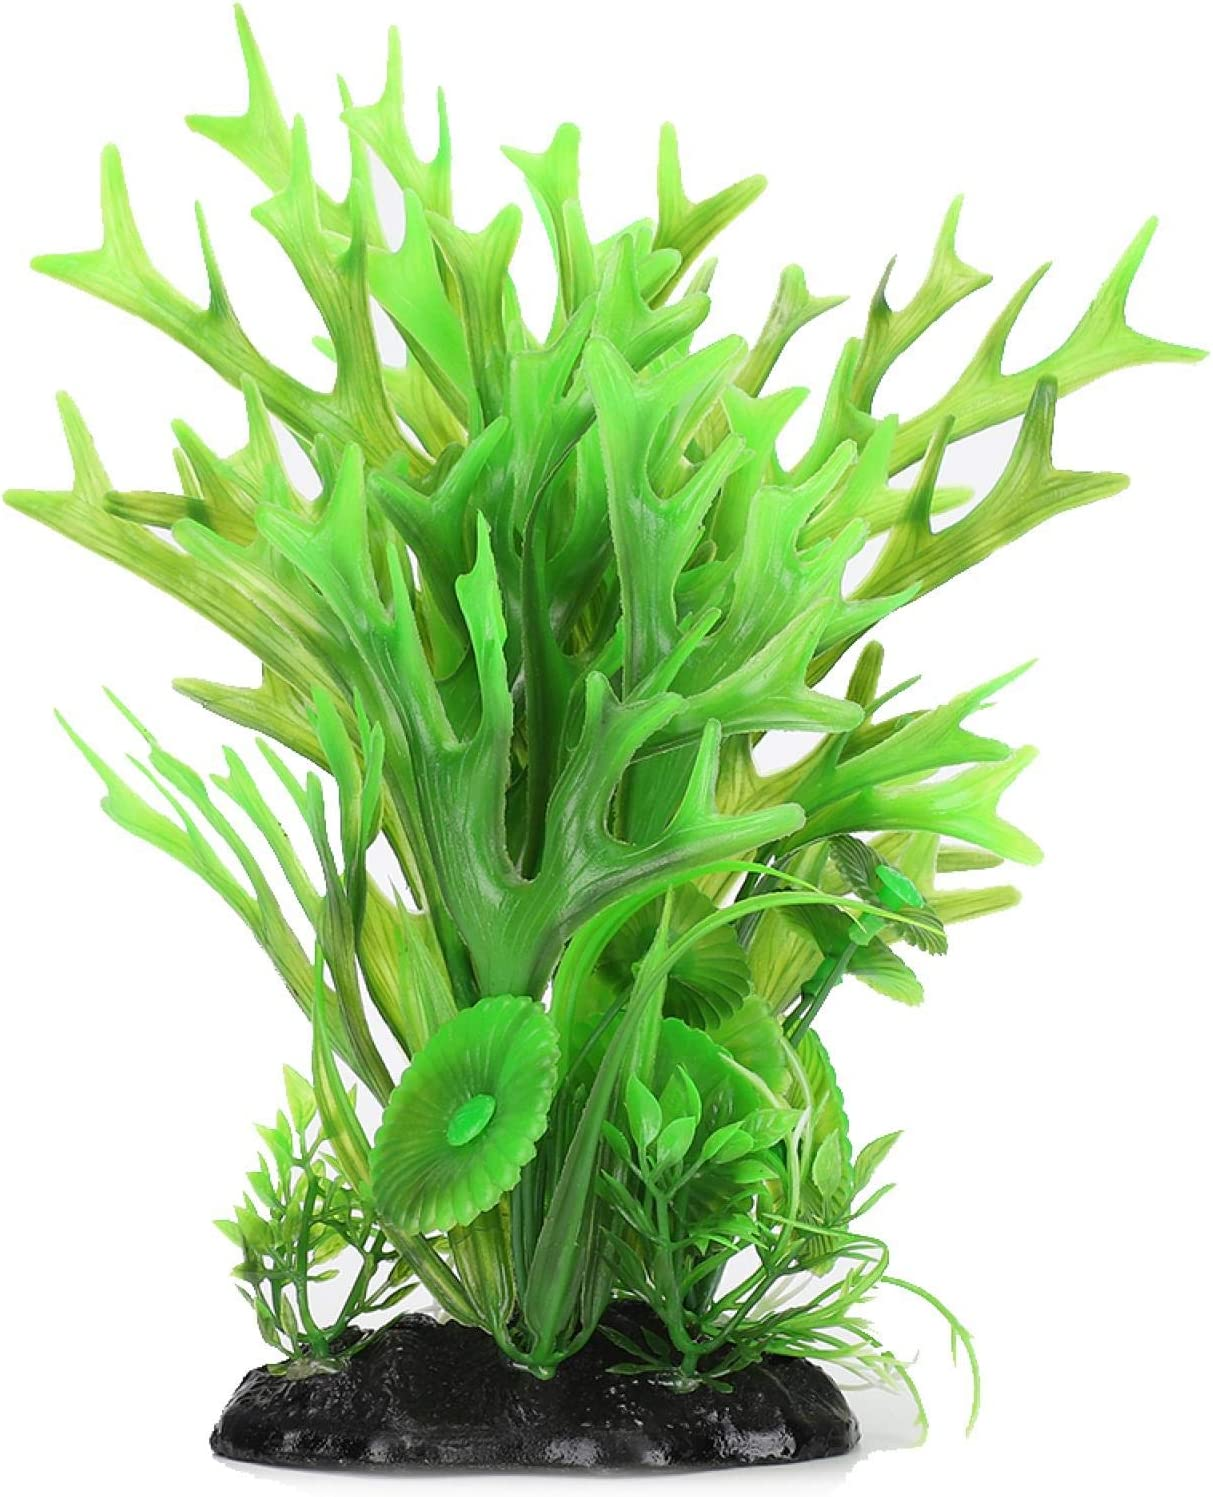 Jeanoko Artificial Water Grass Attention brand Simulation Plastic OFFicial store + Res Ornament